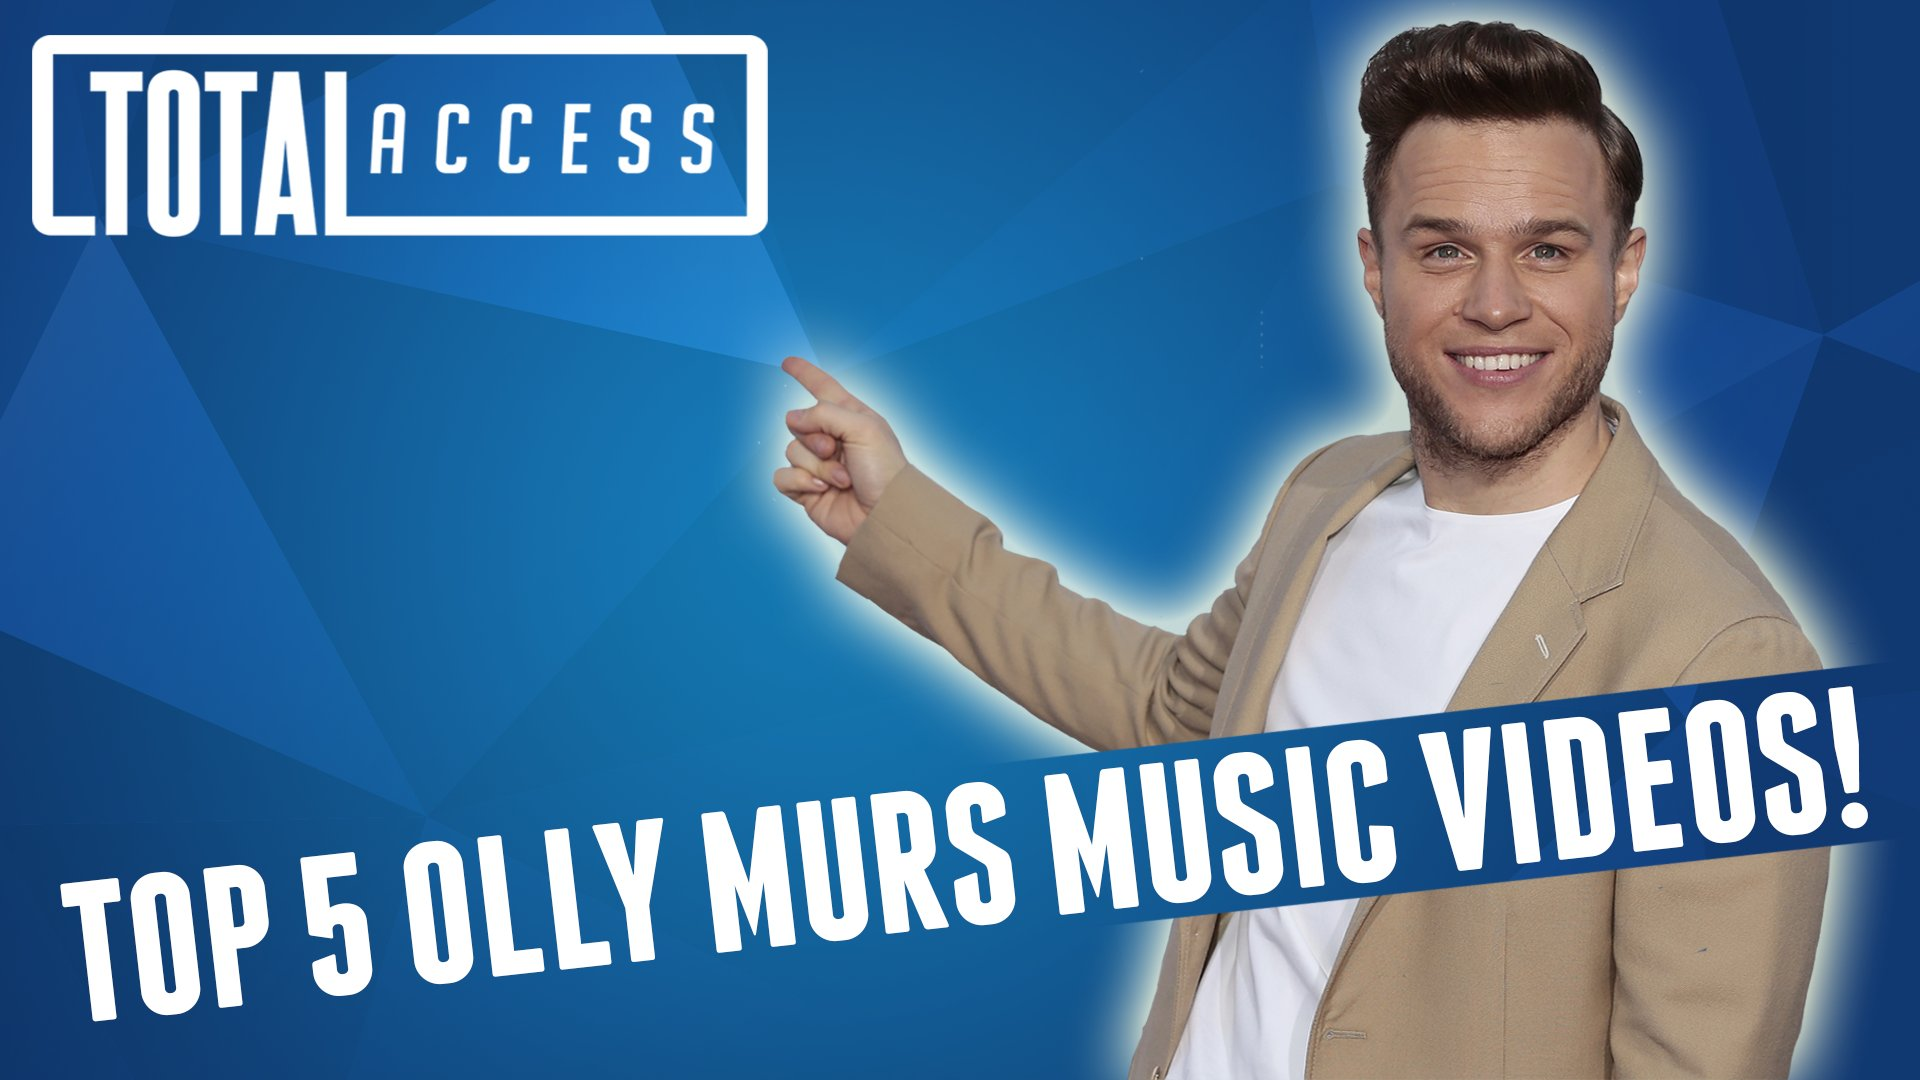 RT @TotalAccessShow: Has YOUR FAVE @OllyOfficial music video made our top 5?!  // https://t.co/86C7qjVdWO https://t.co/DhjH357f5W